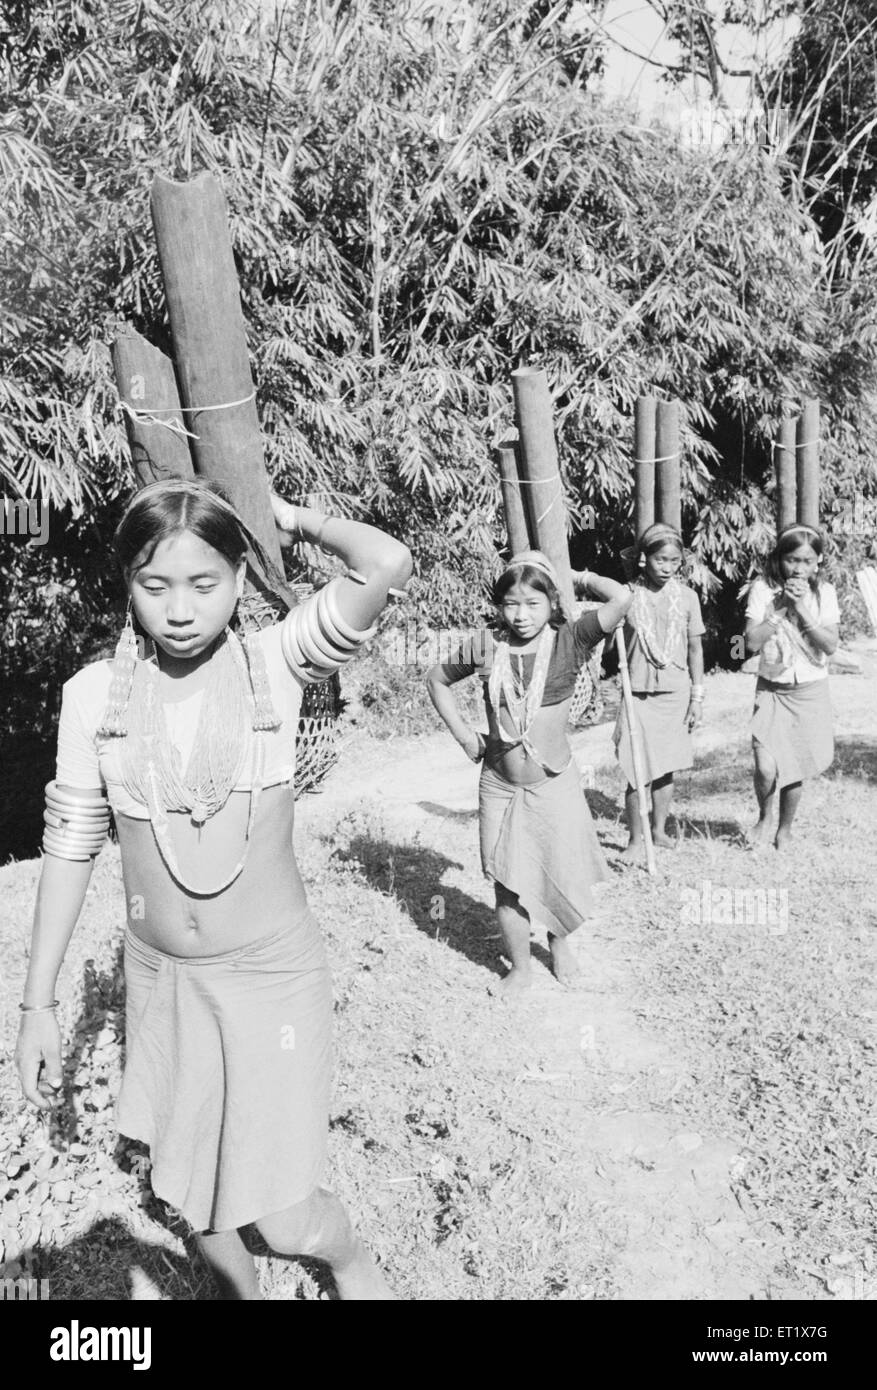 Members of Wancho tribe girls fetching water in bamboo pipes ; Tirap District ; Arunachal Pradesh ; India 1982  - Stock Image